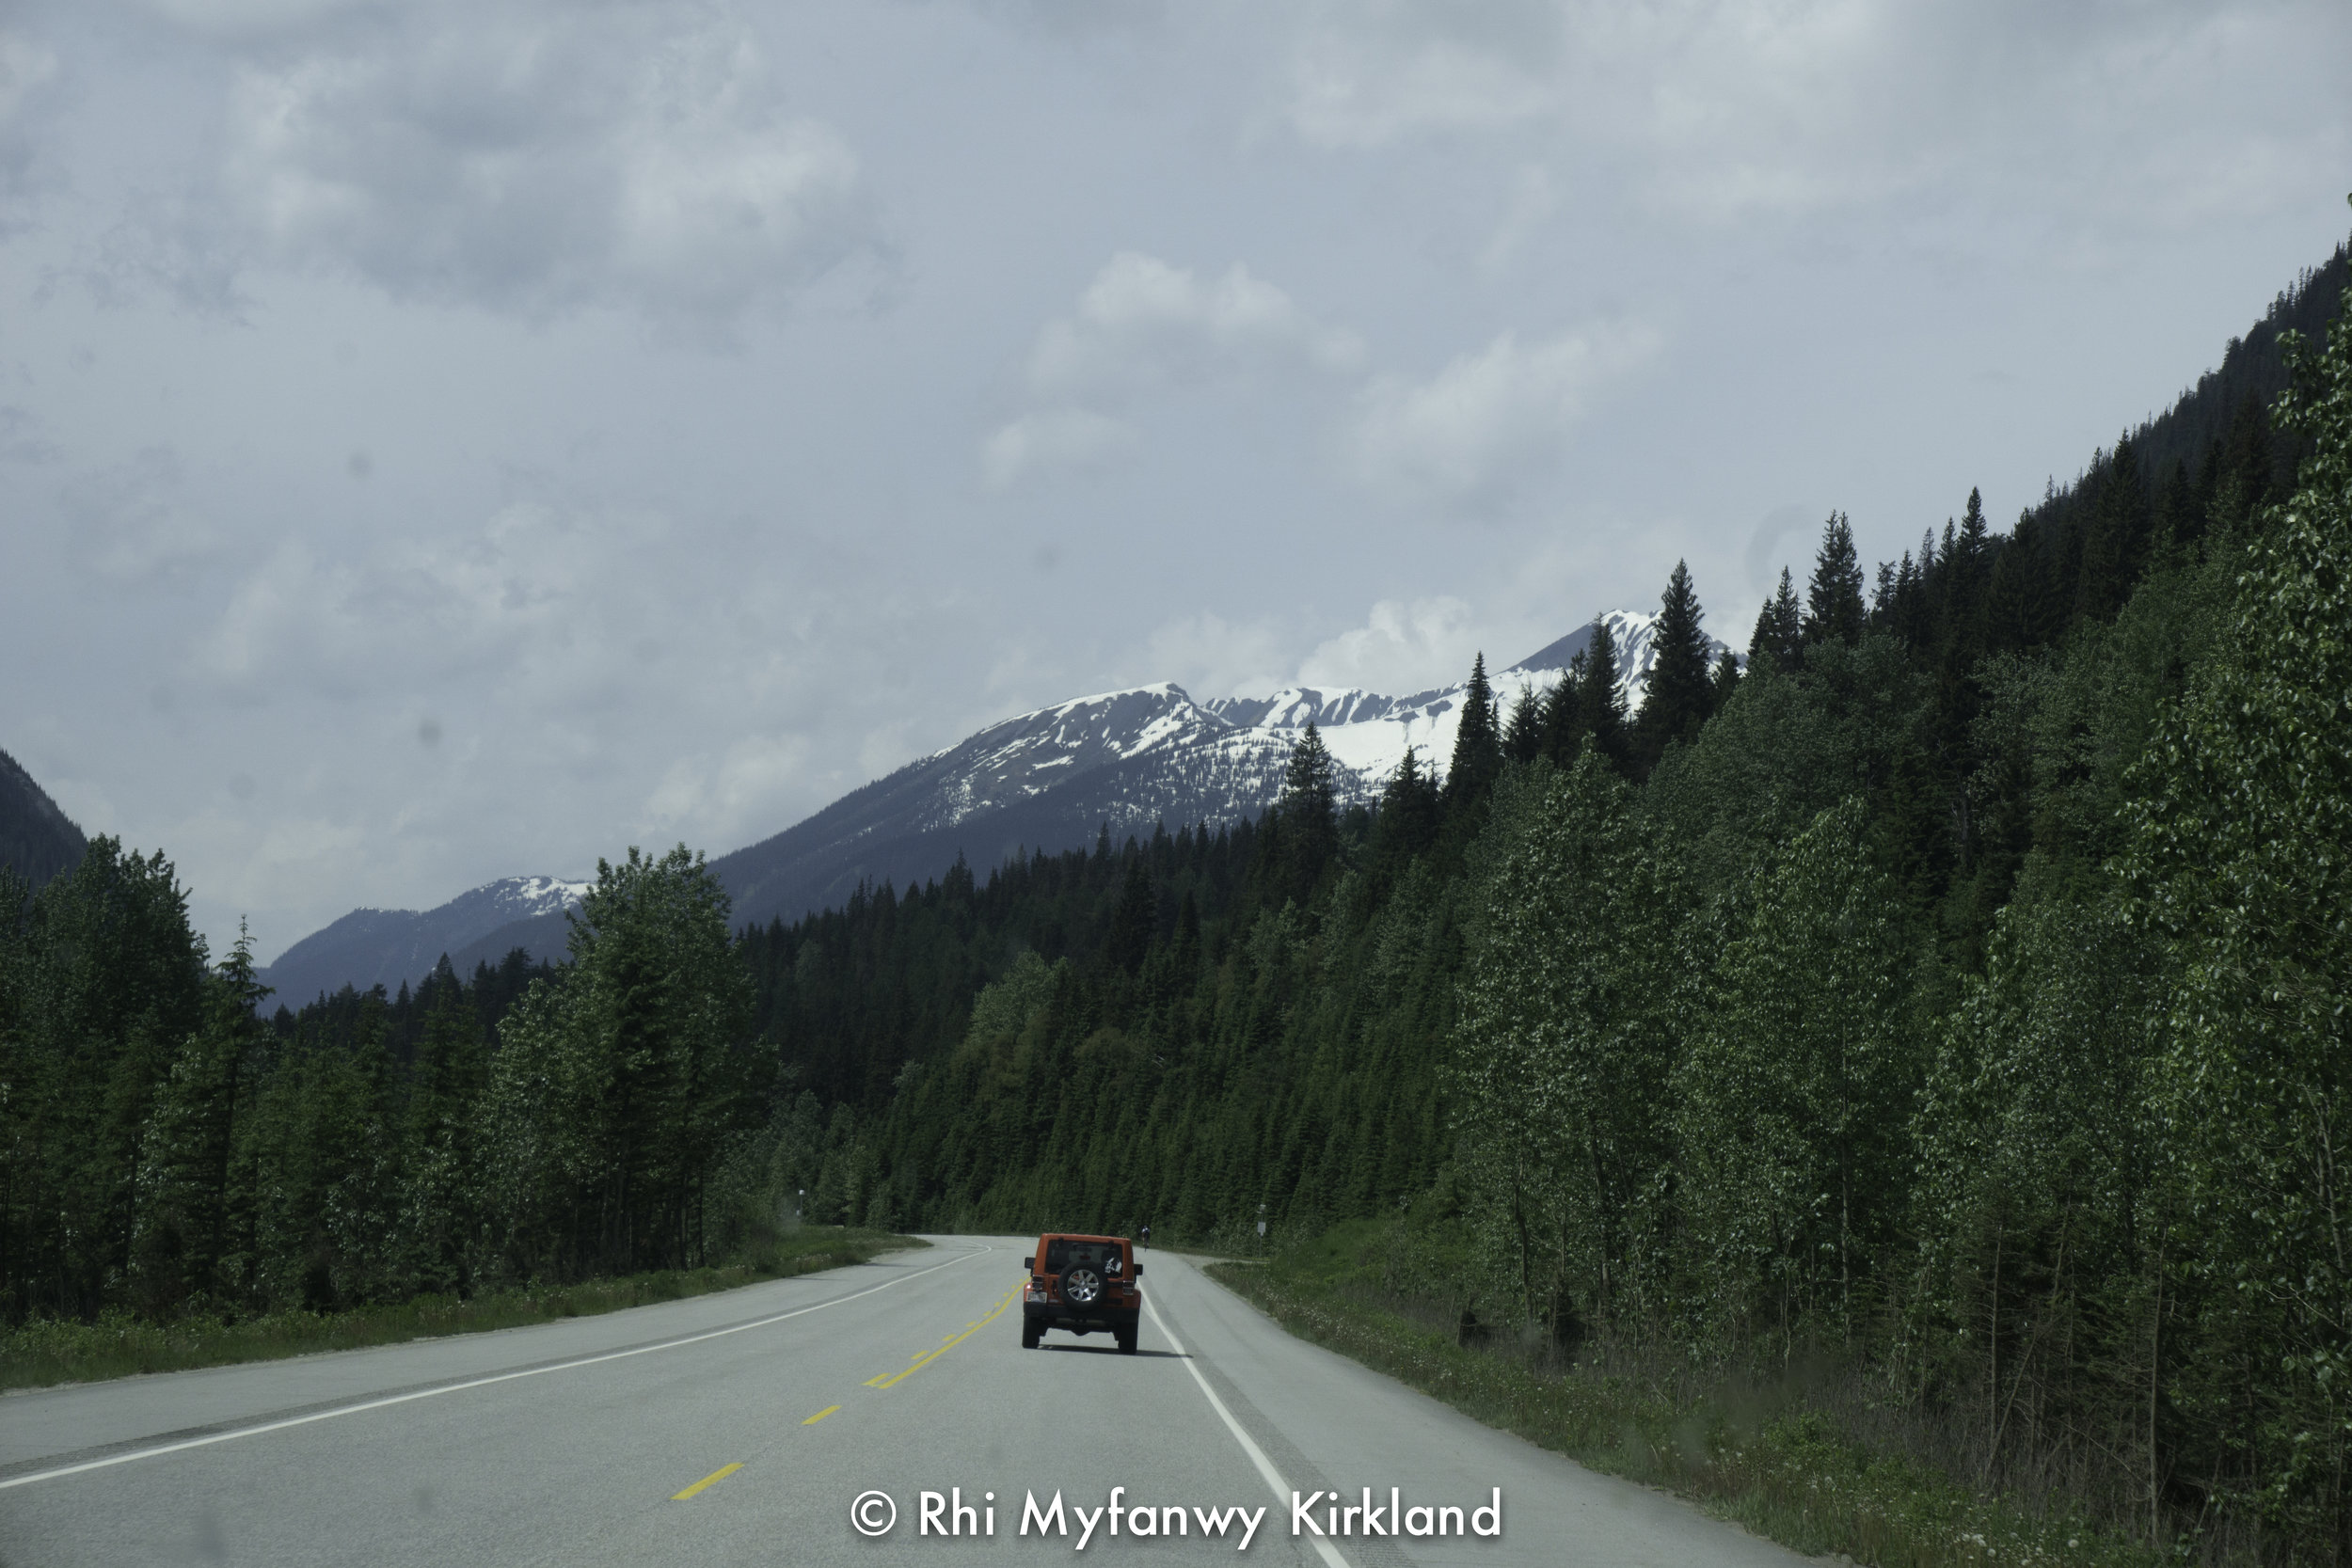 2018.06.08 Drive from Calgary to Vancouver watermark-5.jpg